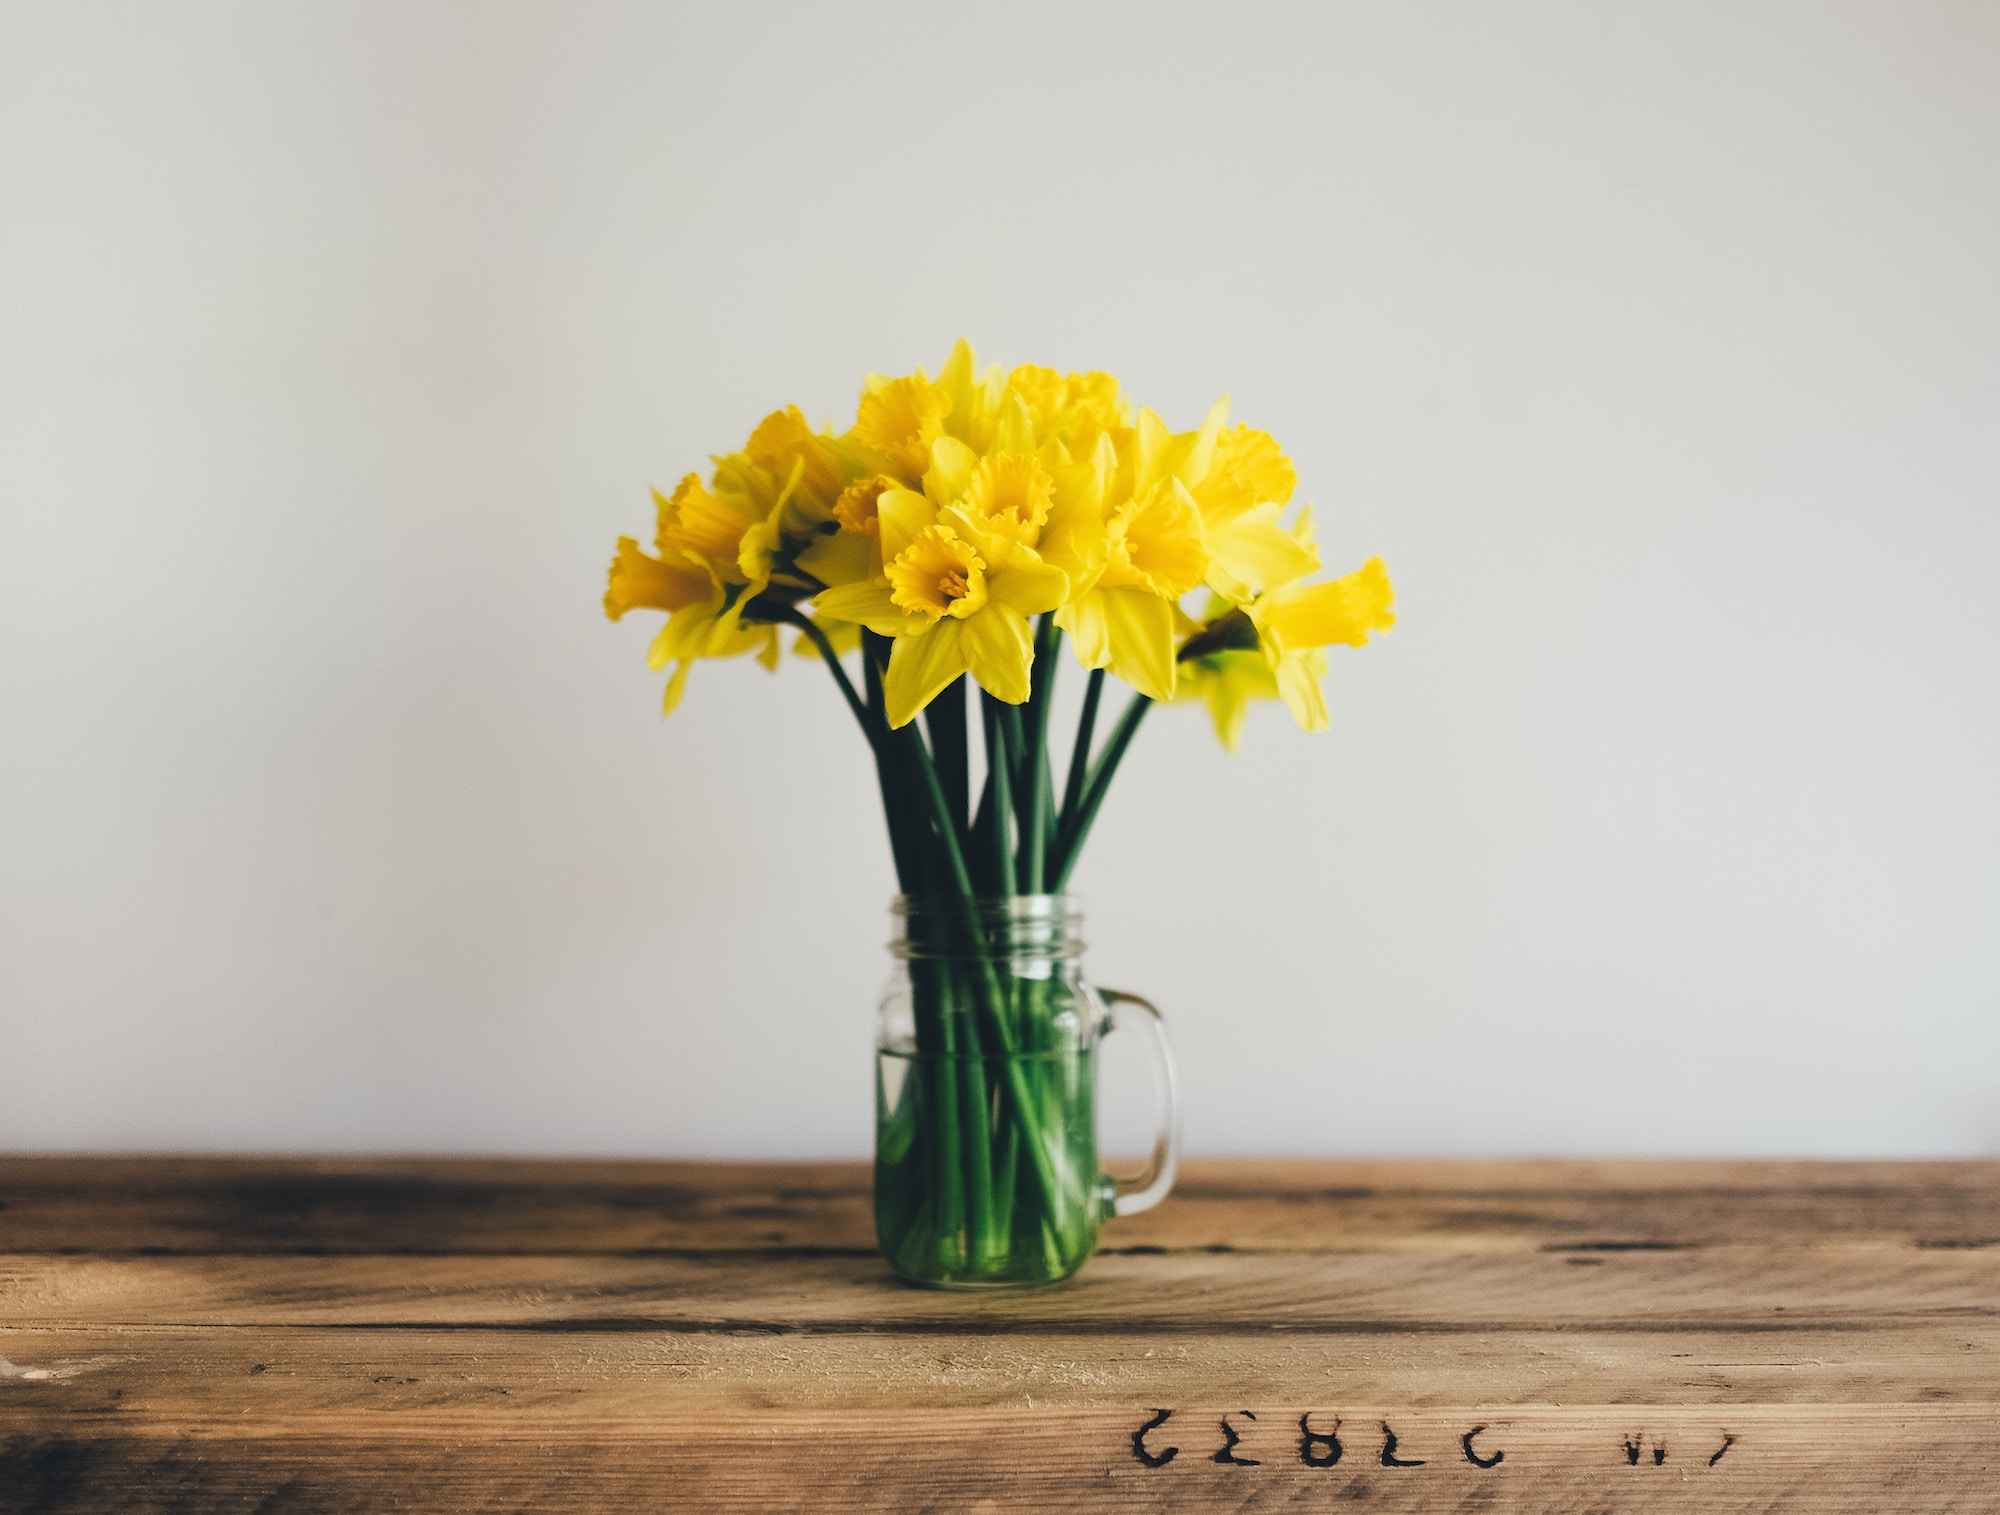 Spring in Paris is almost here, so you'll see plenty of daffodils on sale at Paris florists.